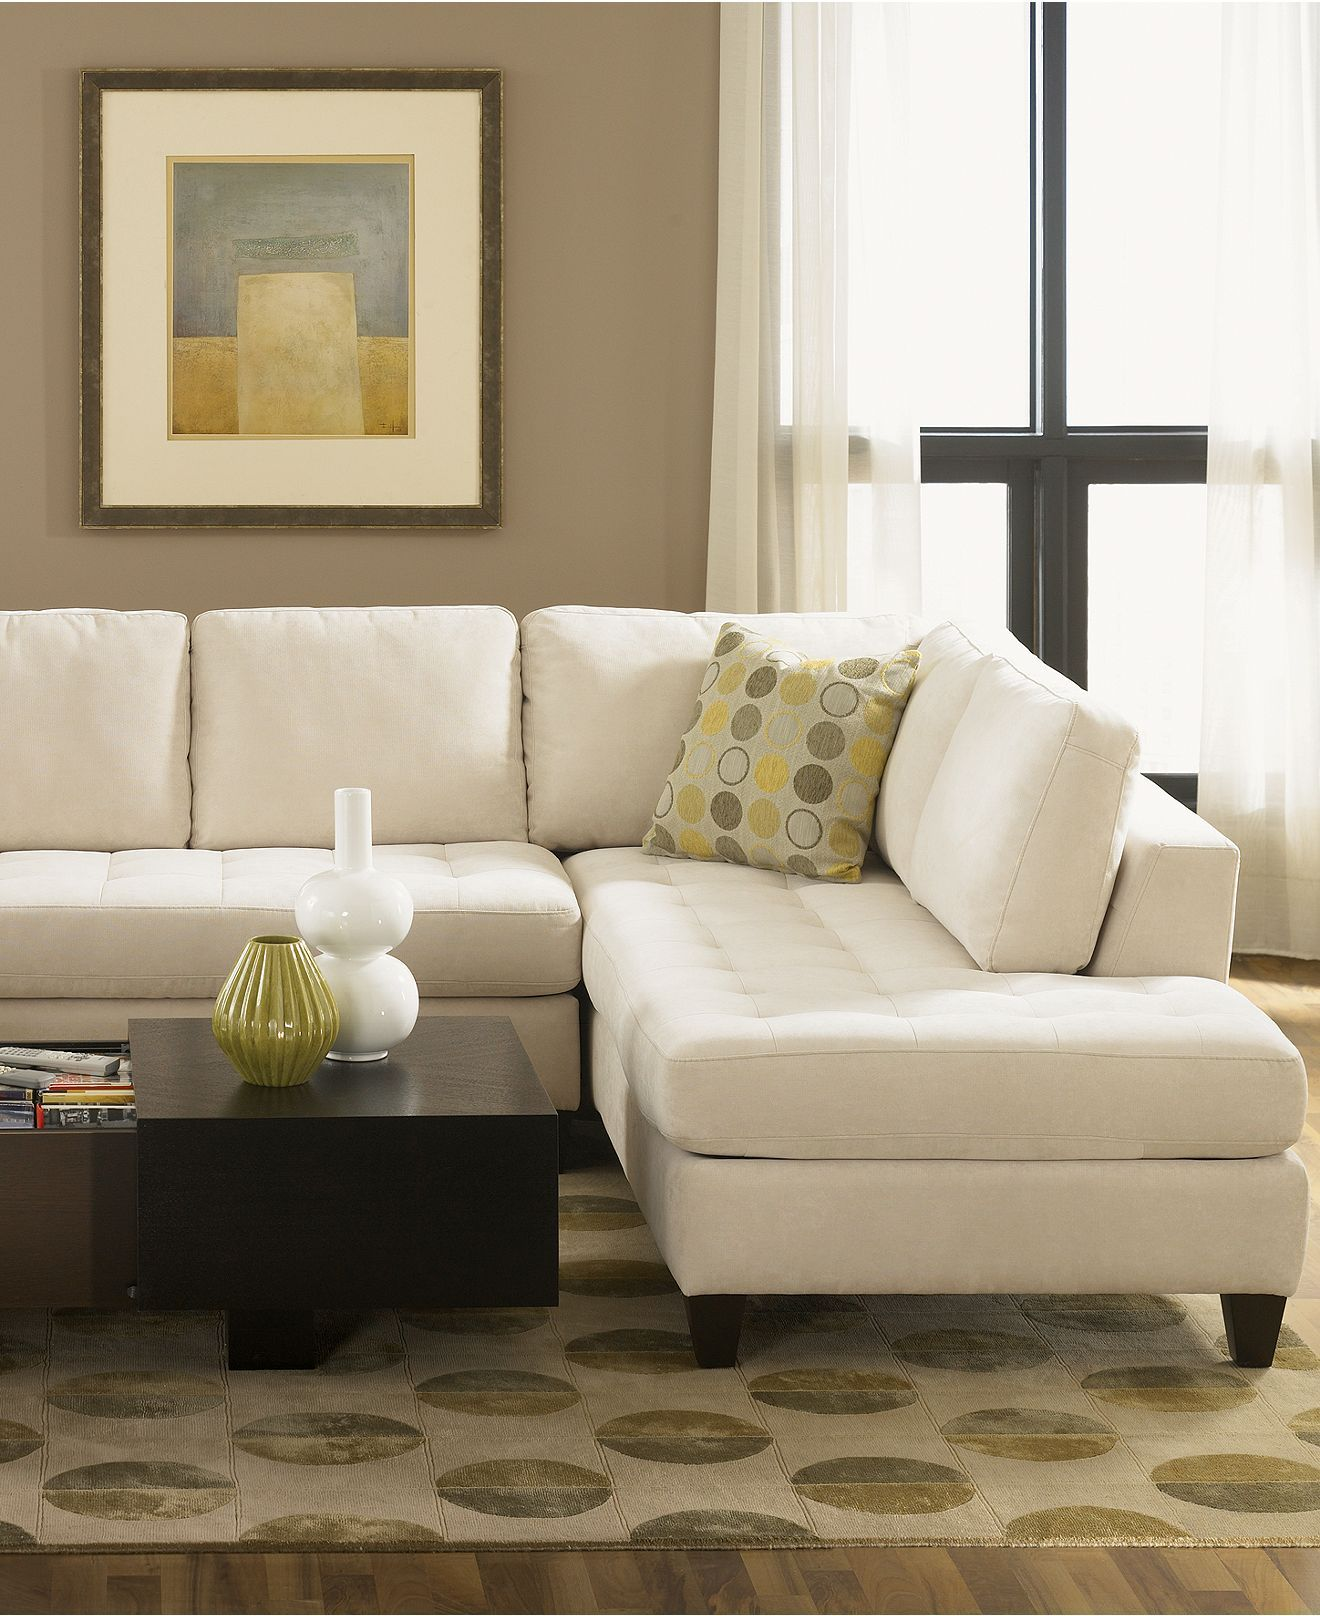 Pin By Molly Proul On Crystal Oceguera Living Room Sets Furniture Leather Living Room Furniture Living Room Furniture